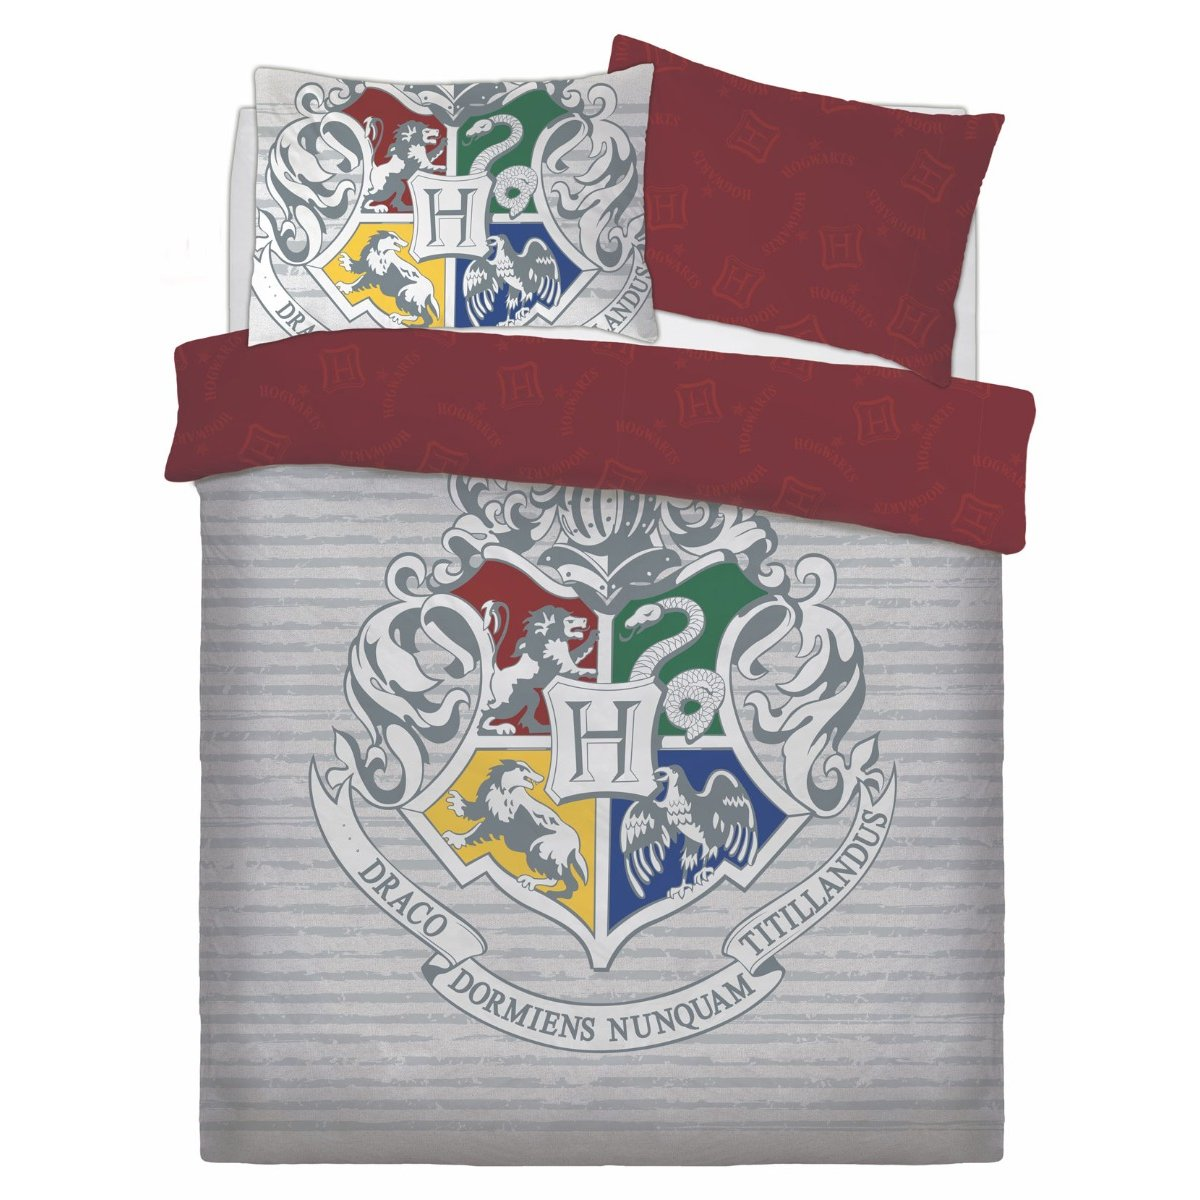 Harry Potter Witchcraft and Wizardry Bedding - Reversible Duvet Cover and Pillowcase Set